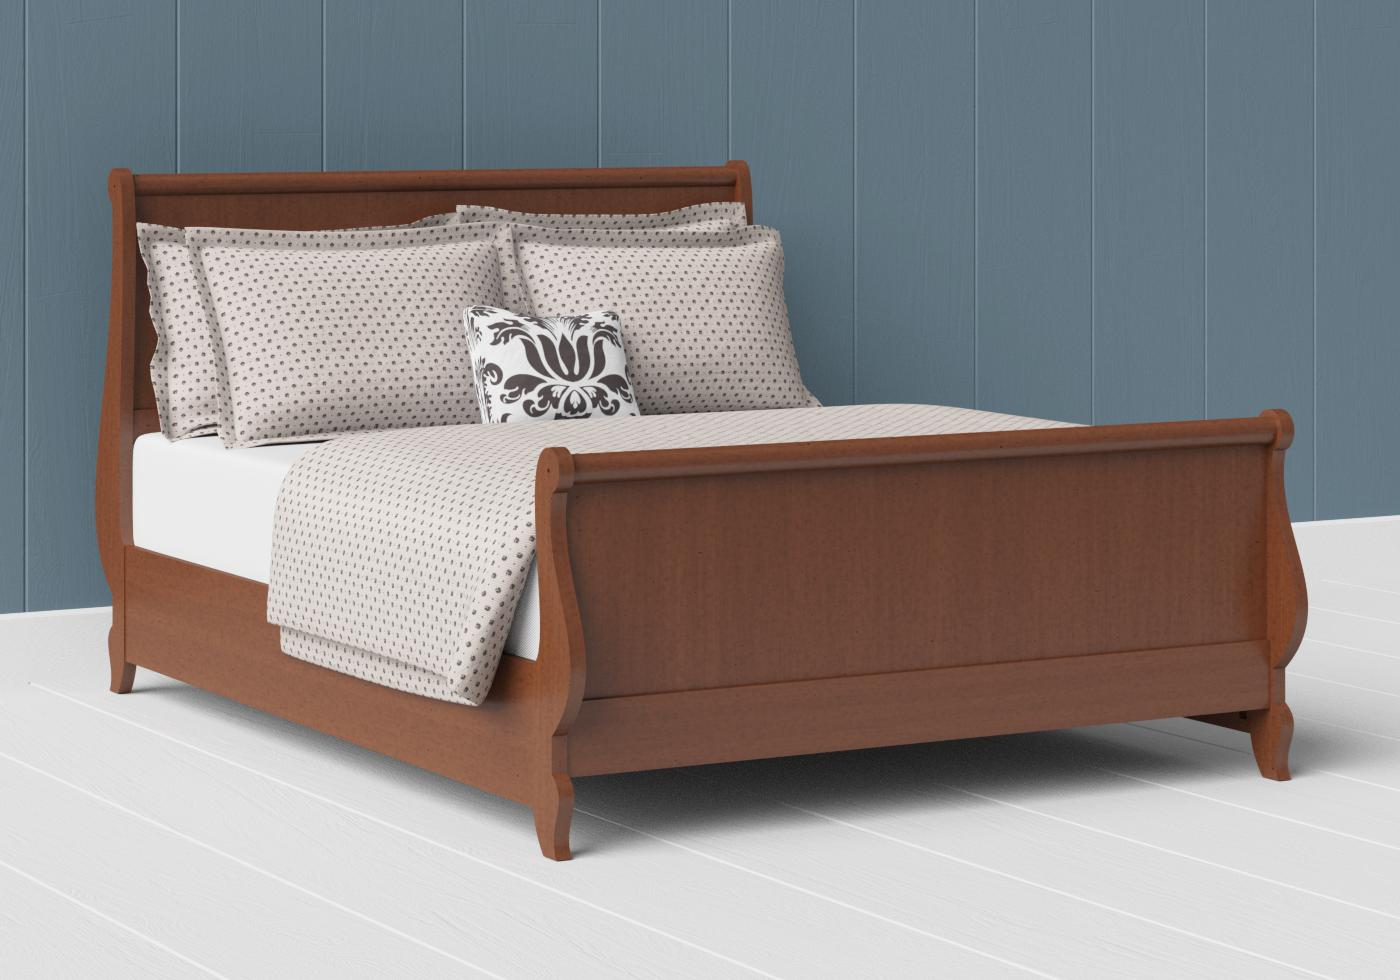 Elliot wood bed in a dark cherry finish